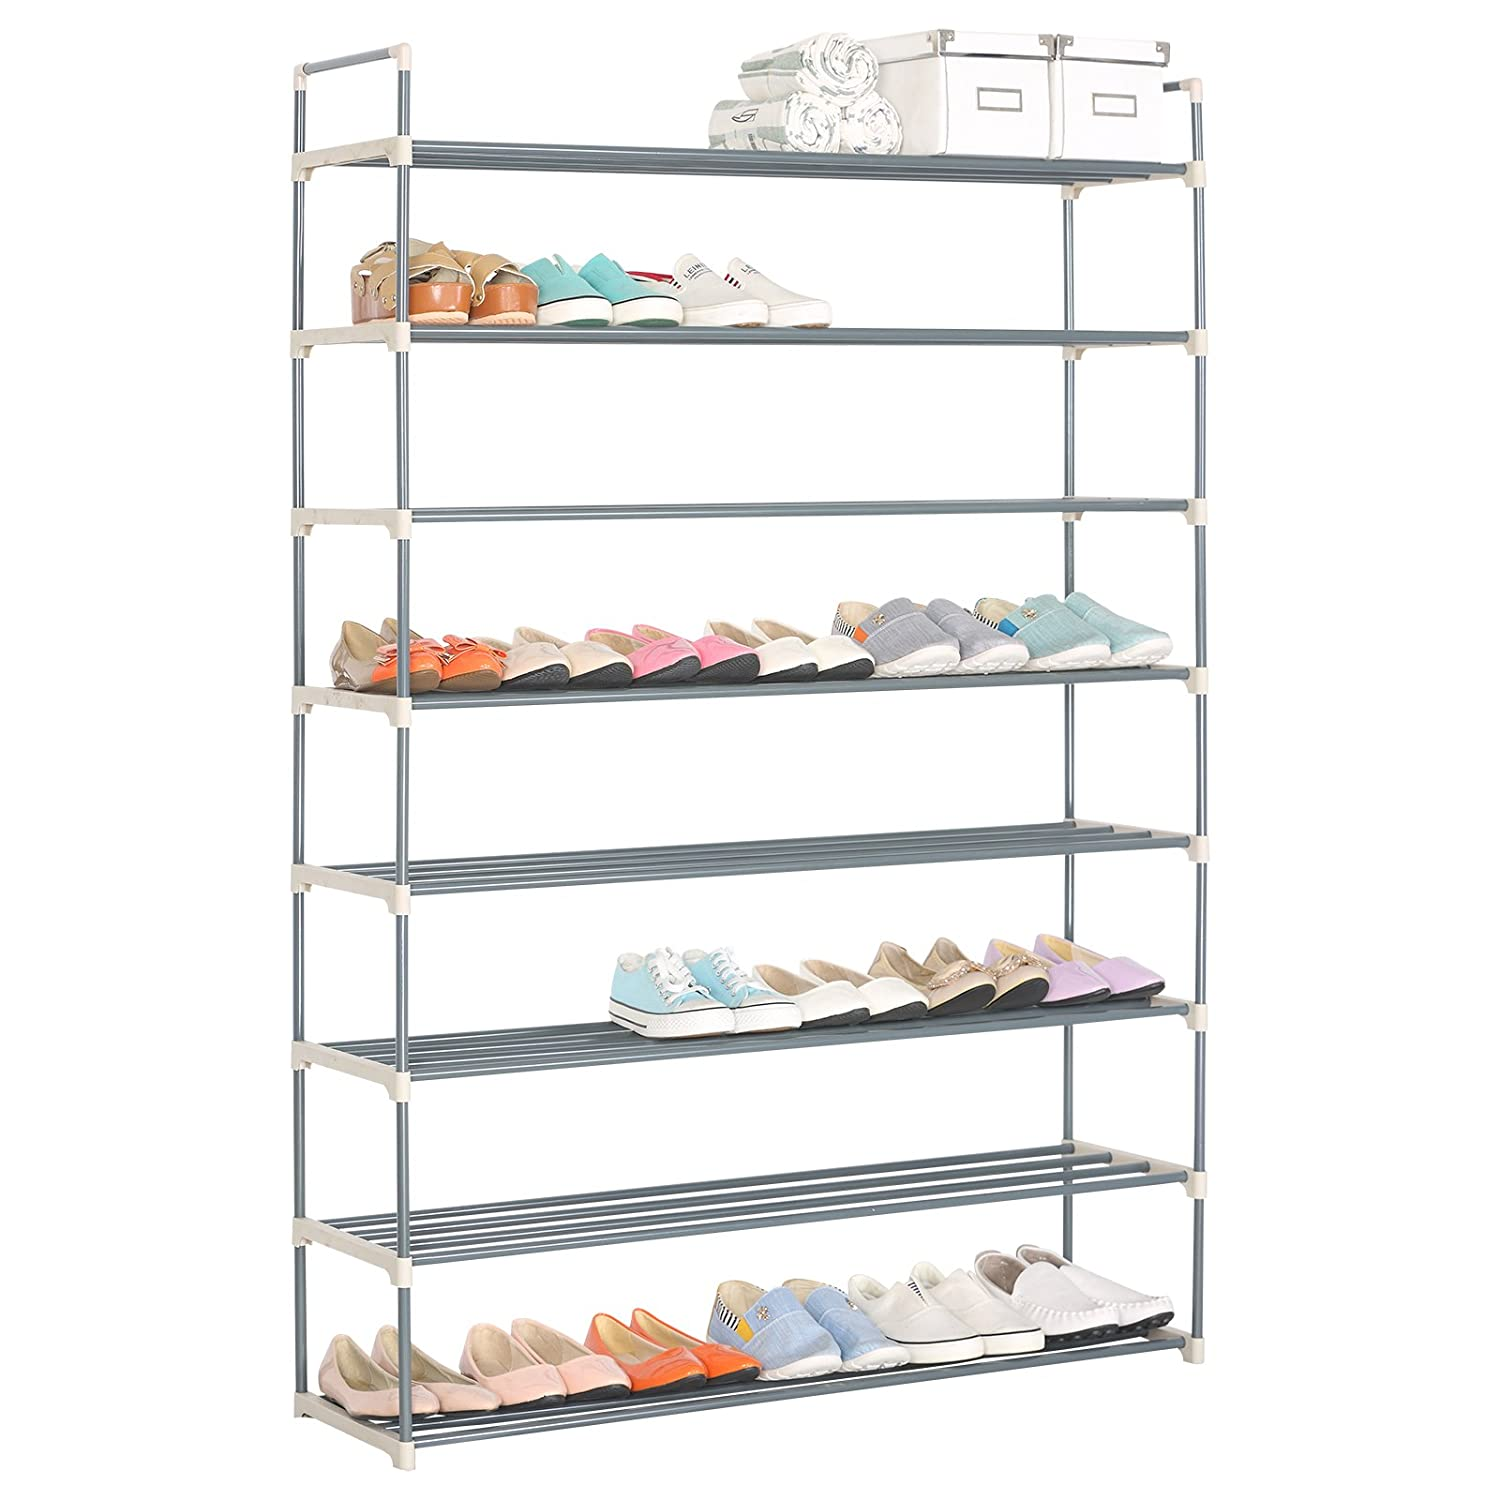 Amazon.com: WOLTU Big Shoes Racks Organizer 8 Tiers Holds 48 Pairs Shoes  Storage Utility Tower Stackable Shelves Grey: Home U0026 Kitchen